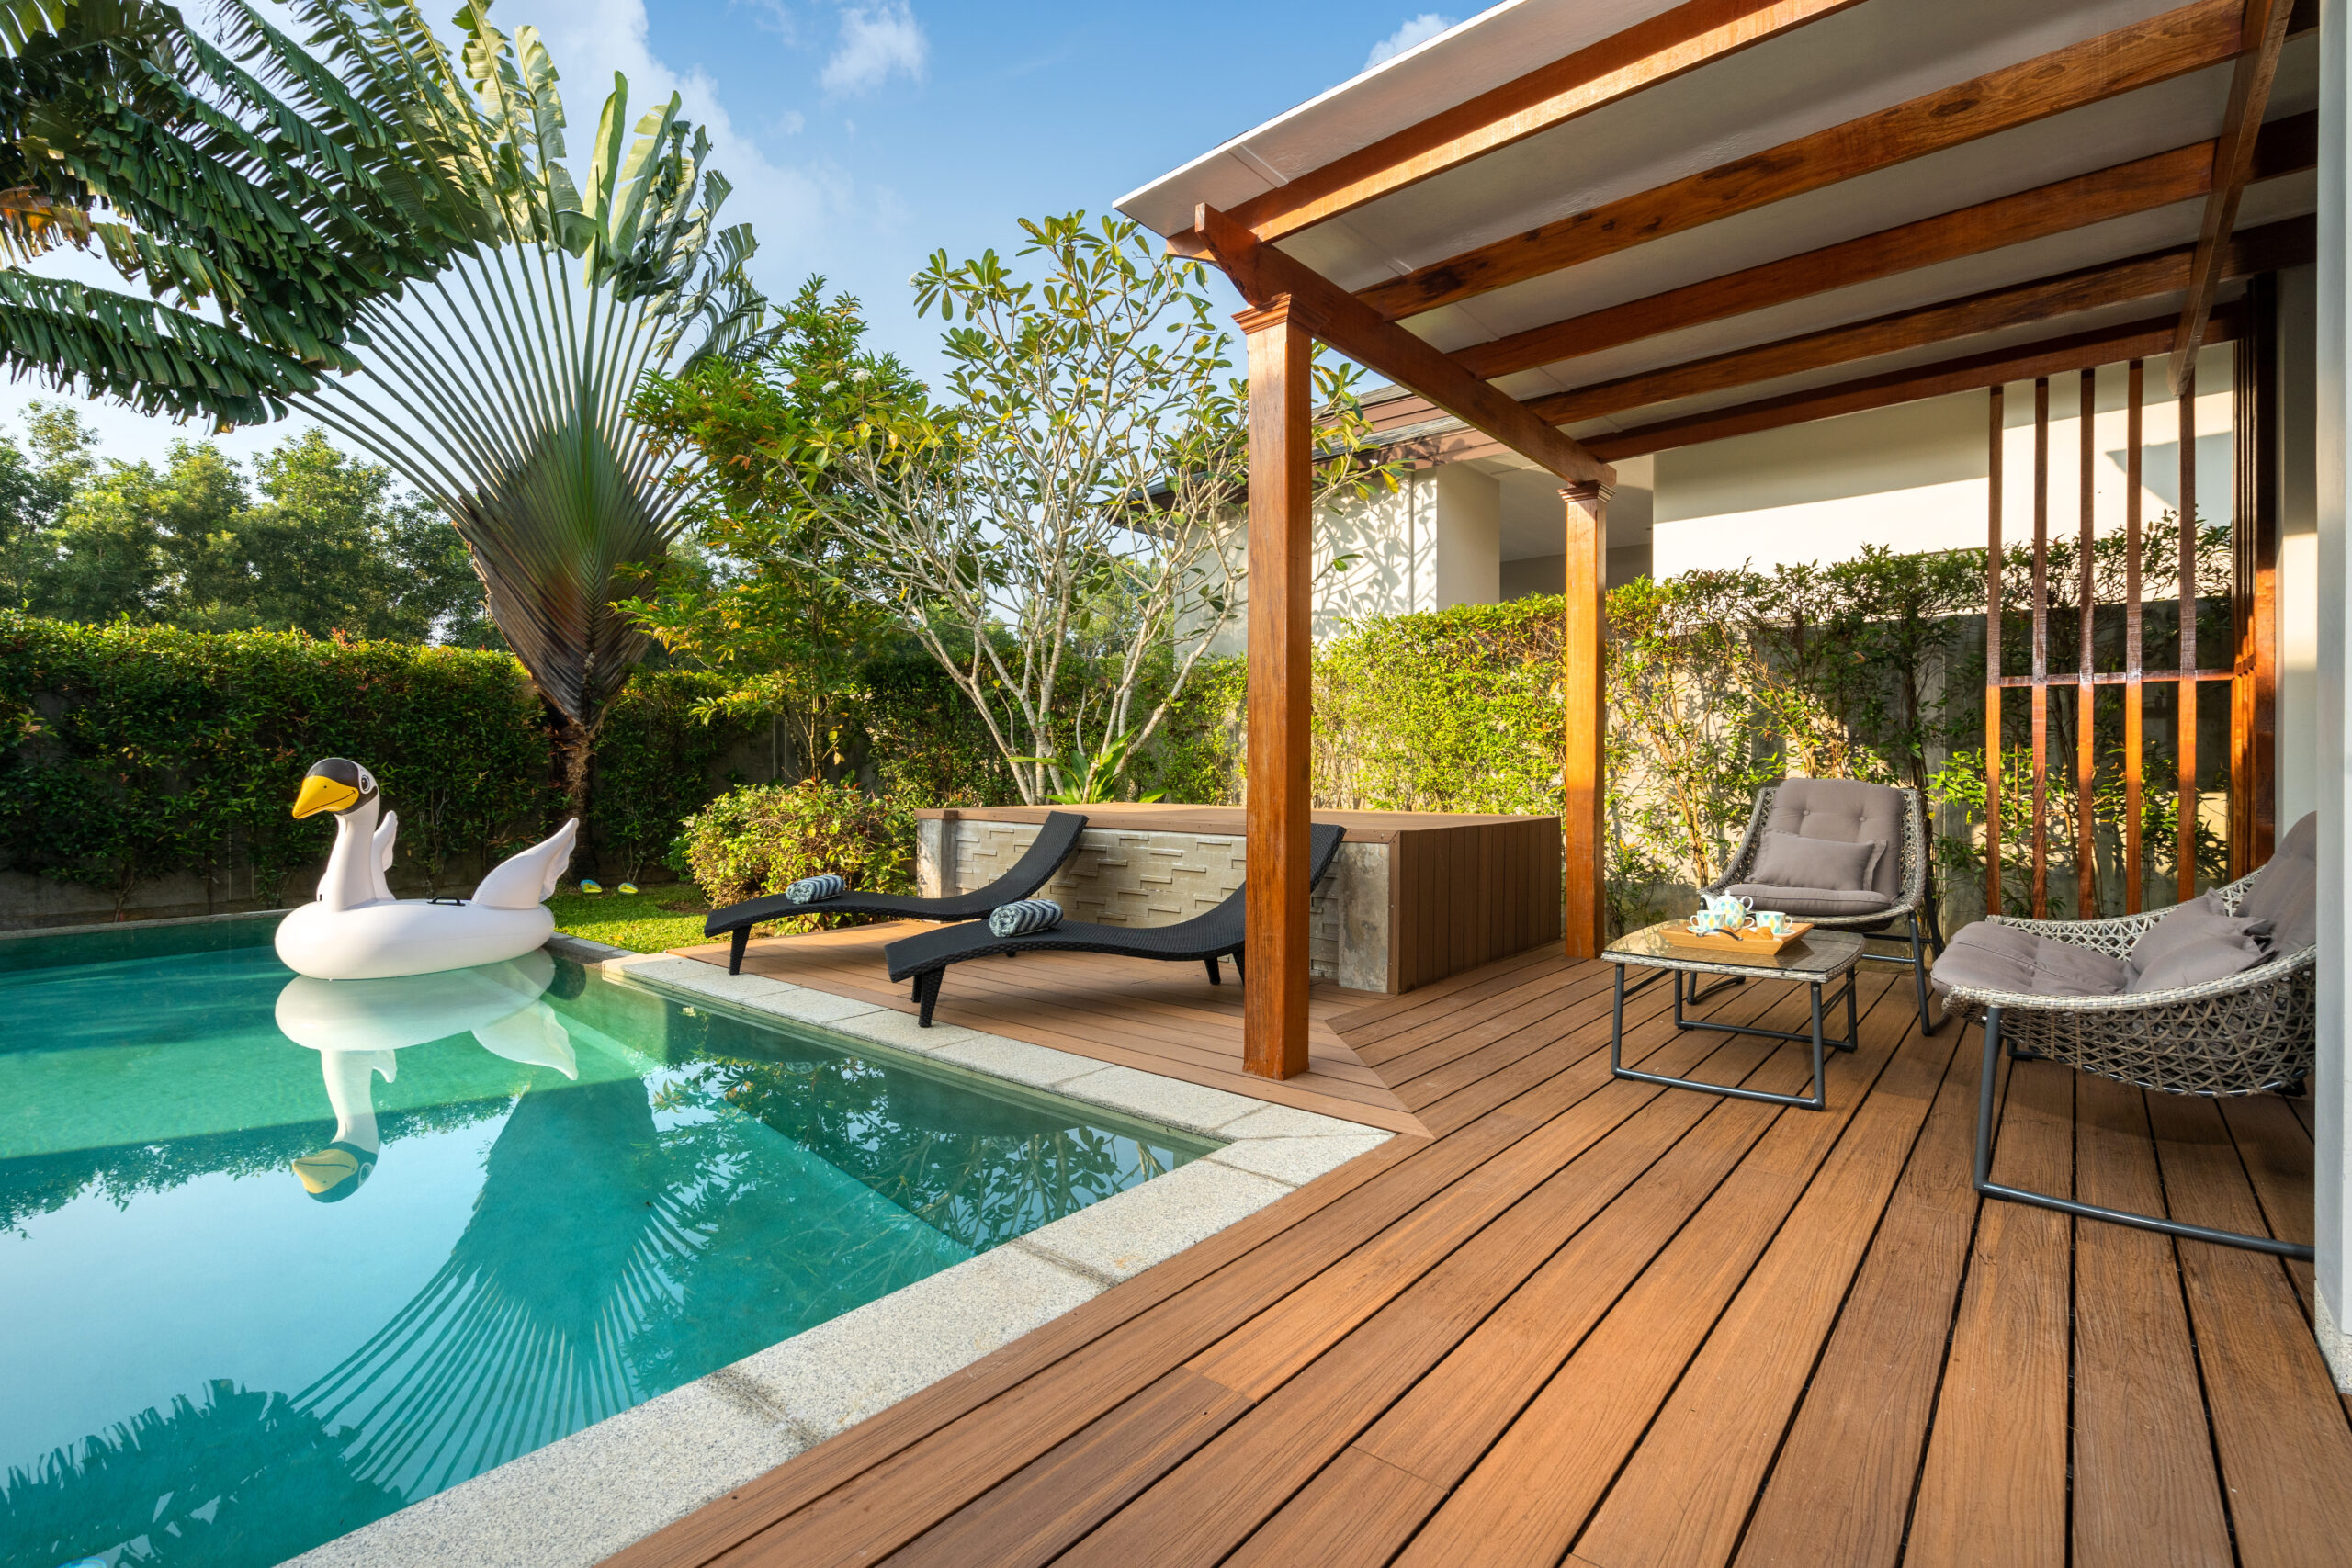 Swimming pool in tropical garden pool villa feature floating balloon